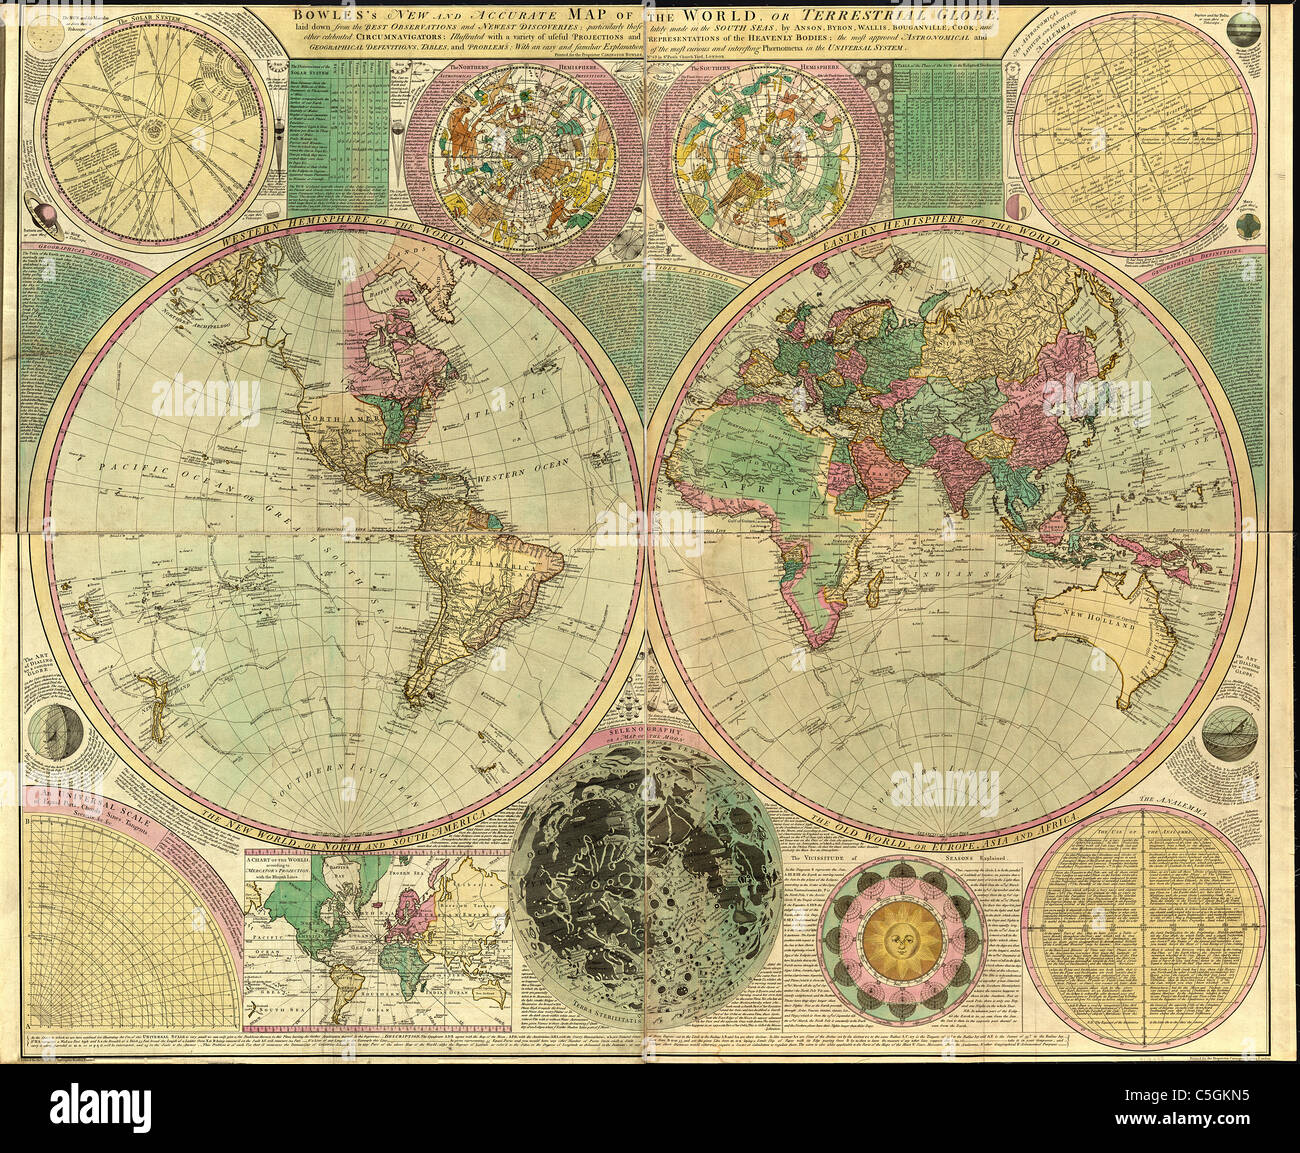 Archaic world map stock photos archaic world map stock images alamy bowless new and accurate map of the world or terrestrial globe antique world map gumiabroncs Gallery